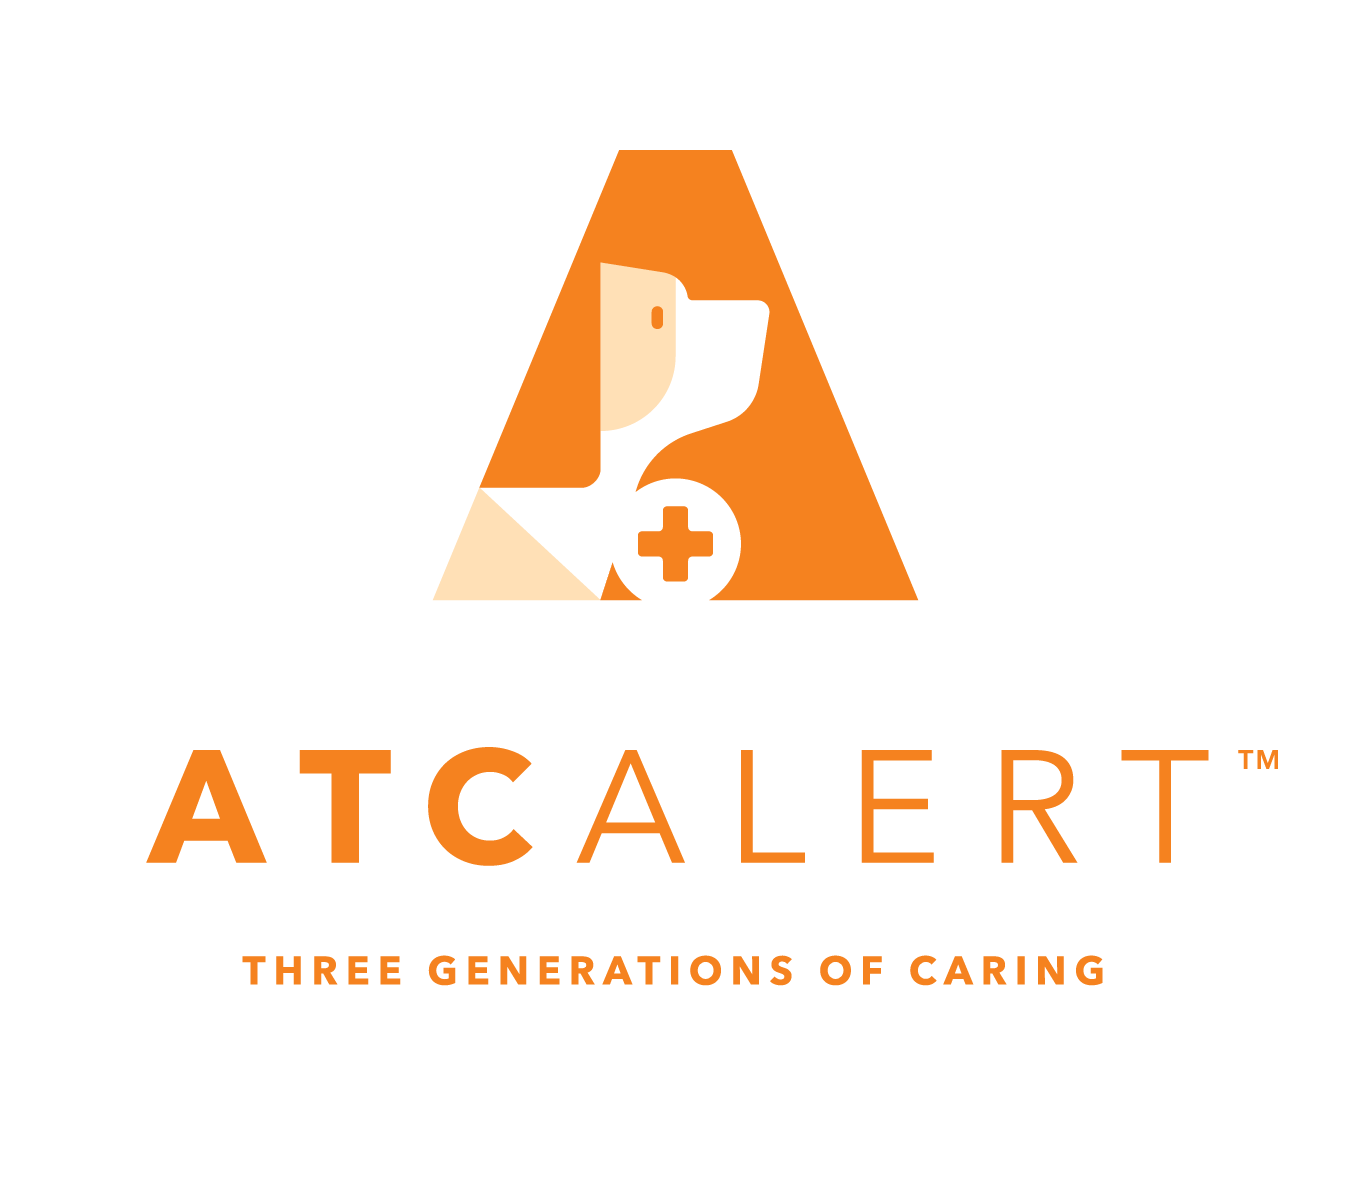 ATC Alert Adds a Complete COVID-19 Program to Its ATC Care Remote Patient Monitoring (RPM) Platform in North America to Support Hospital Bed Capacity Management